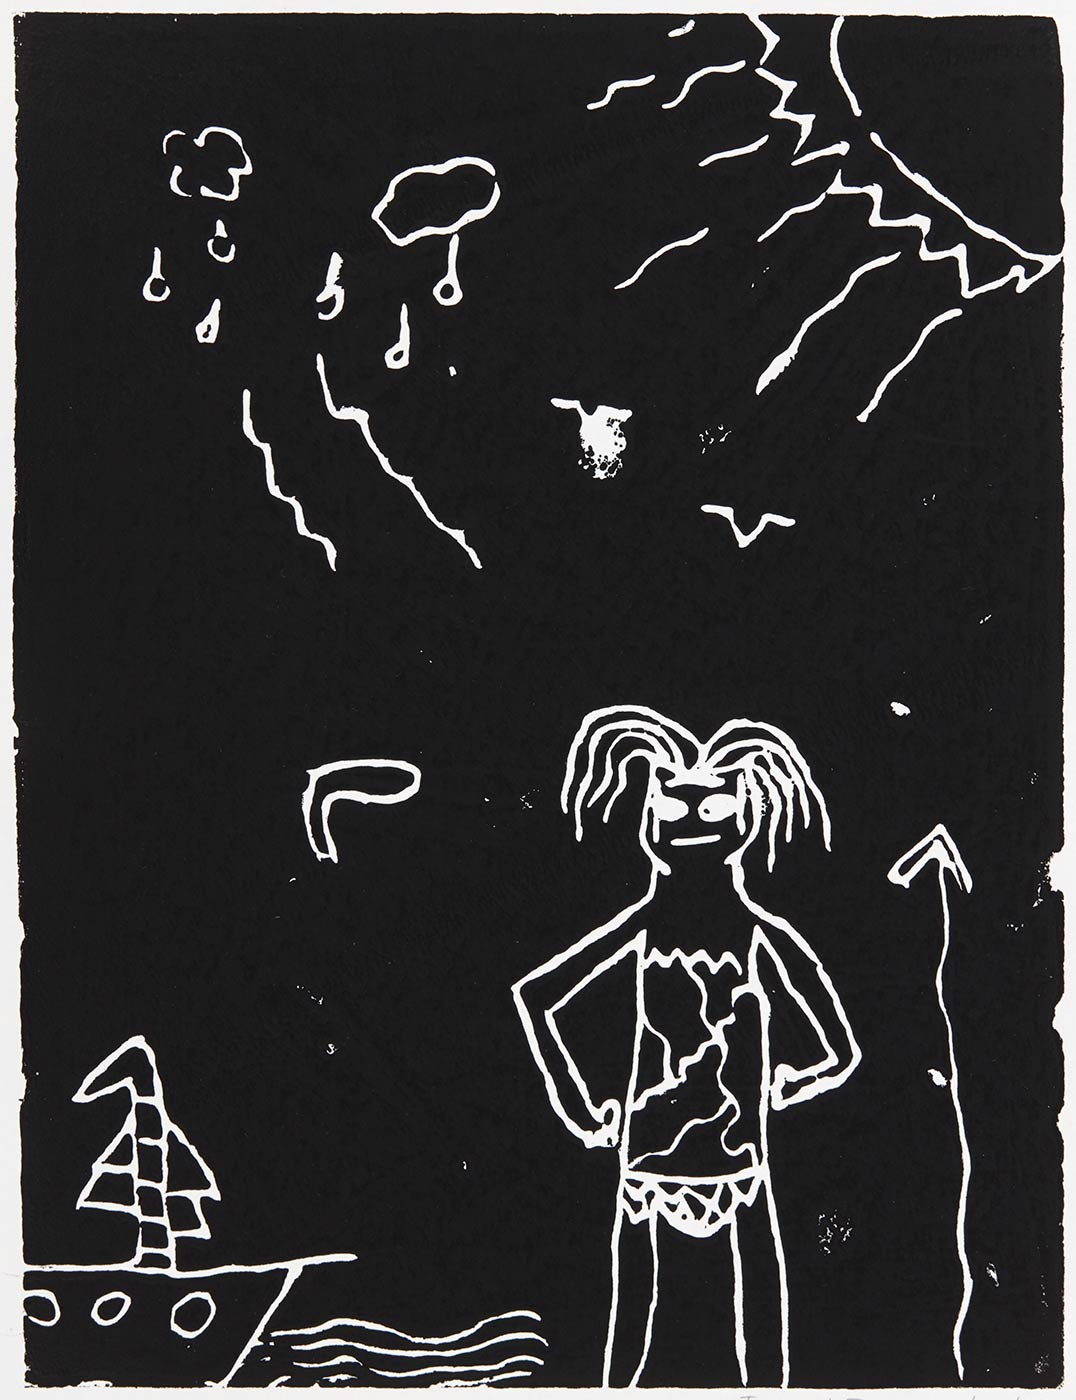 A child's artwork print depicting a man with his hands on hips, watching a ship in the distance. - click to view larger image